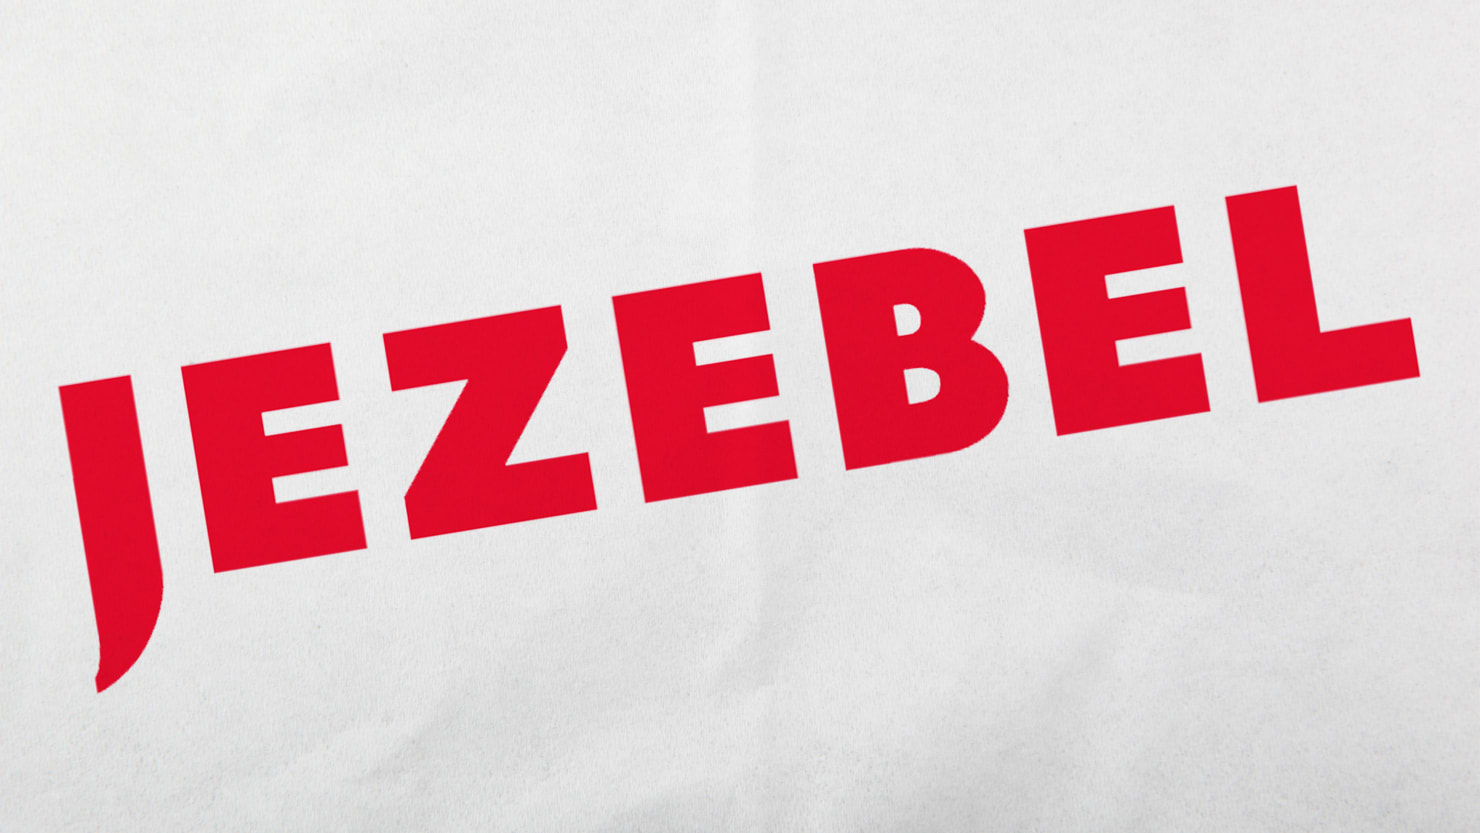 Jezebel Editor Exits, the Latest in String of G/O Media Departures